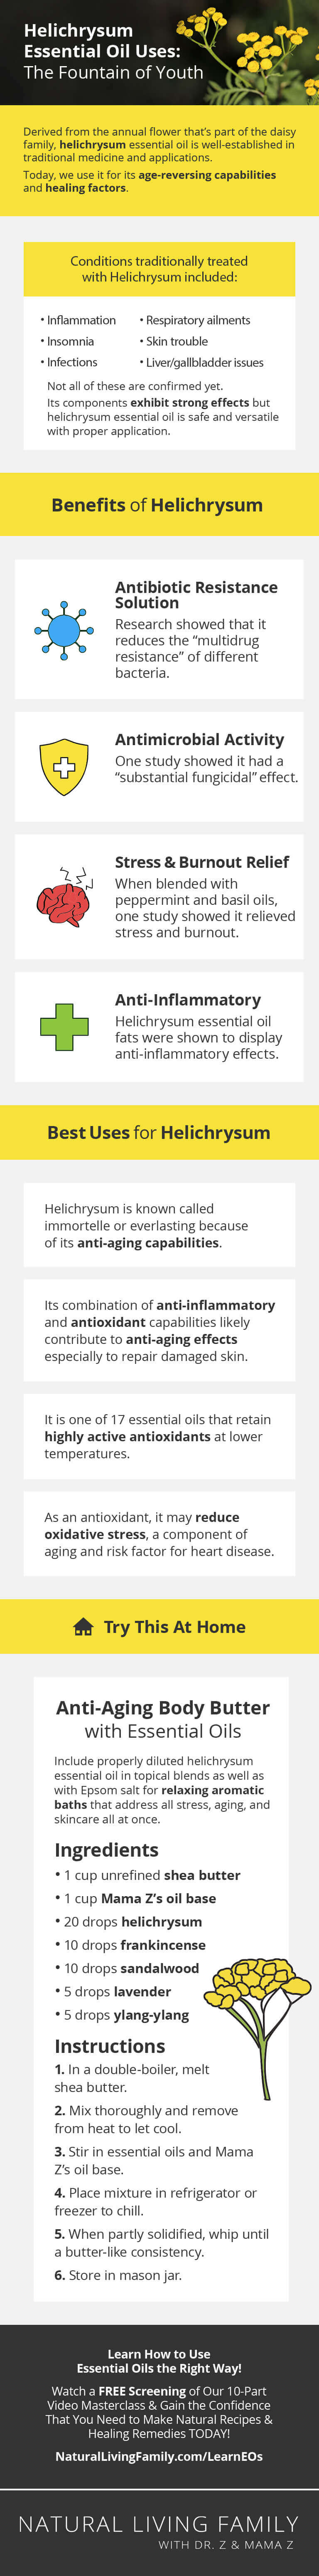 Helichrysum Essential Oil Uses The Fountain of Youth